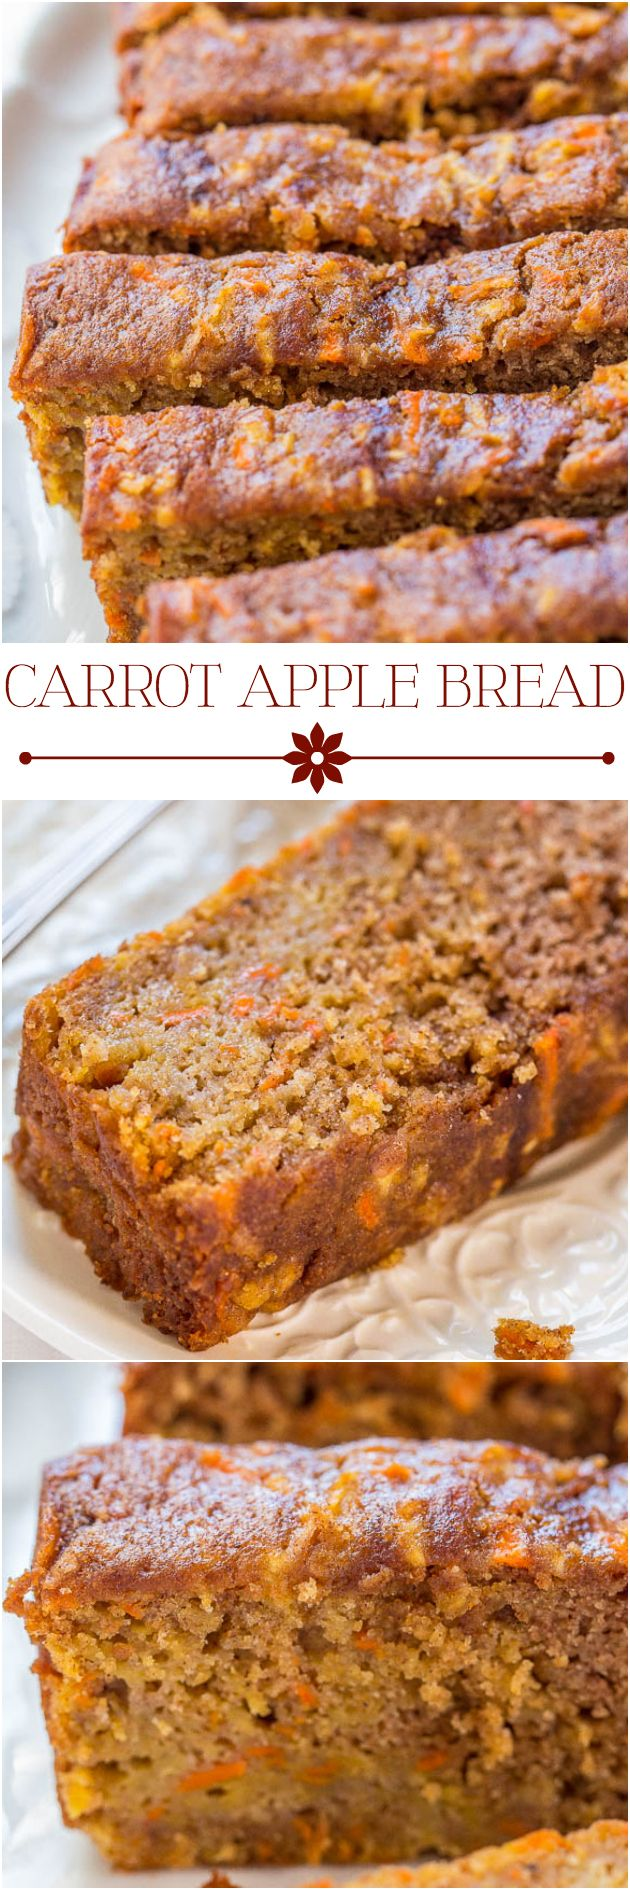 carrot apple bread.